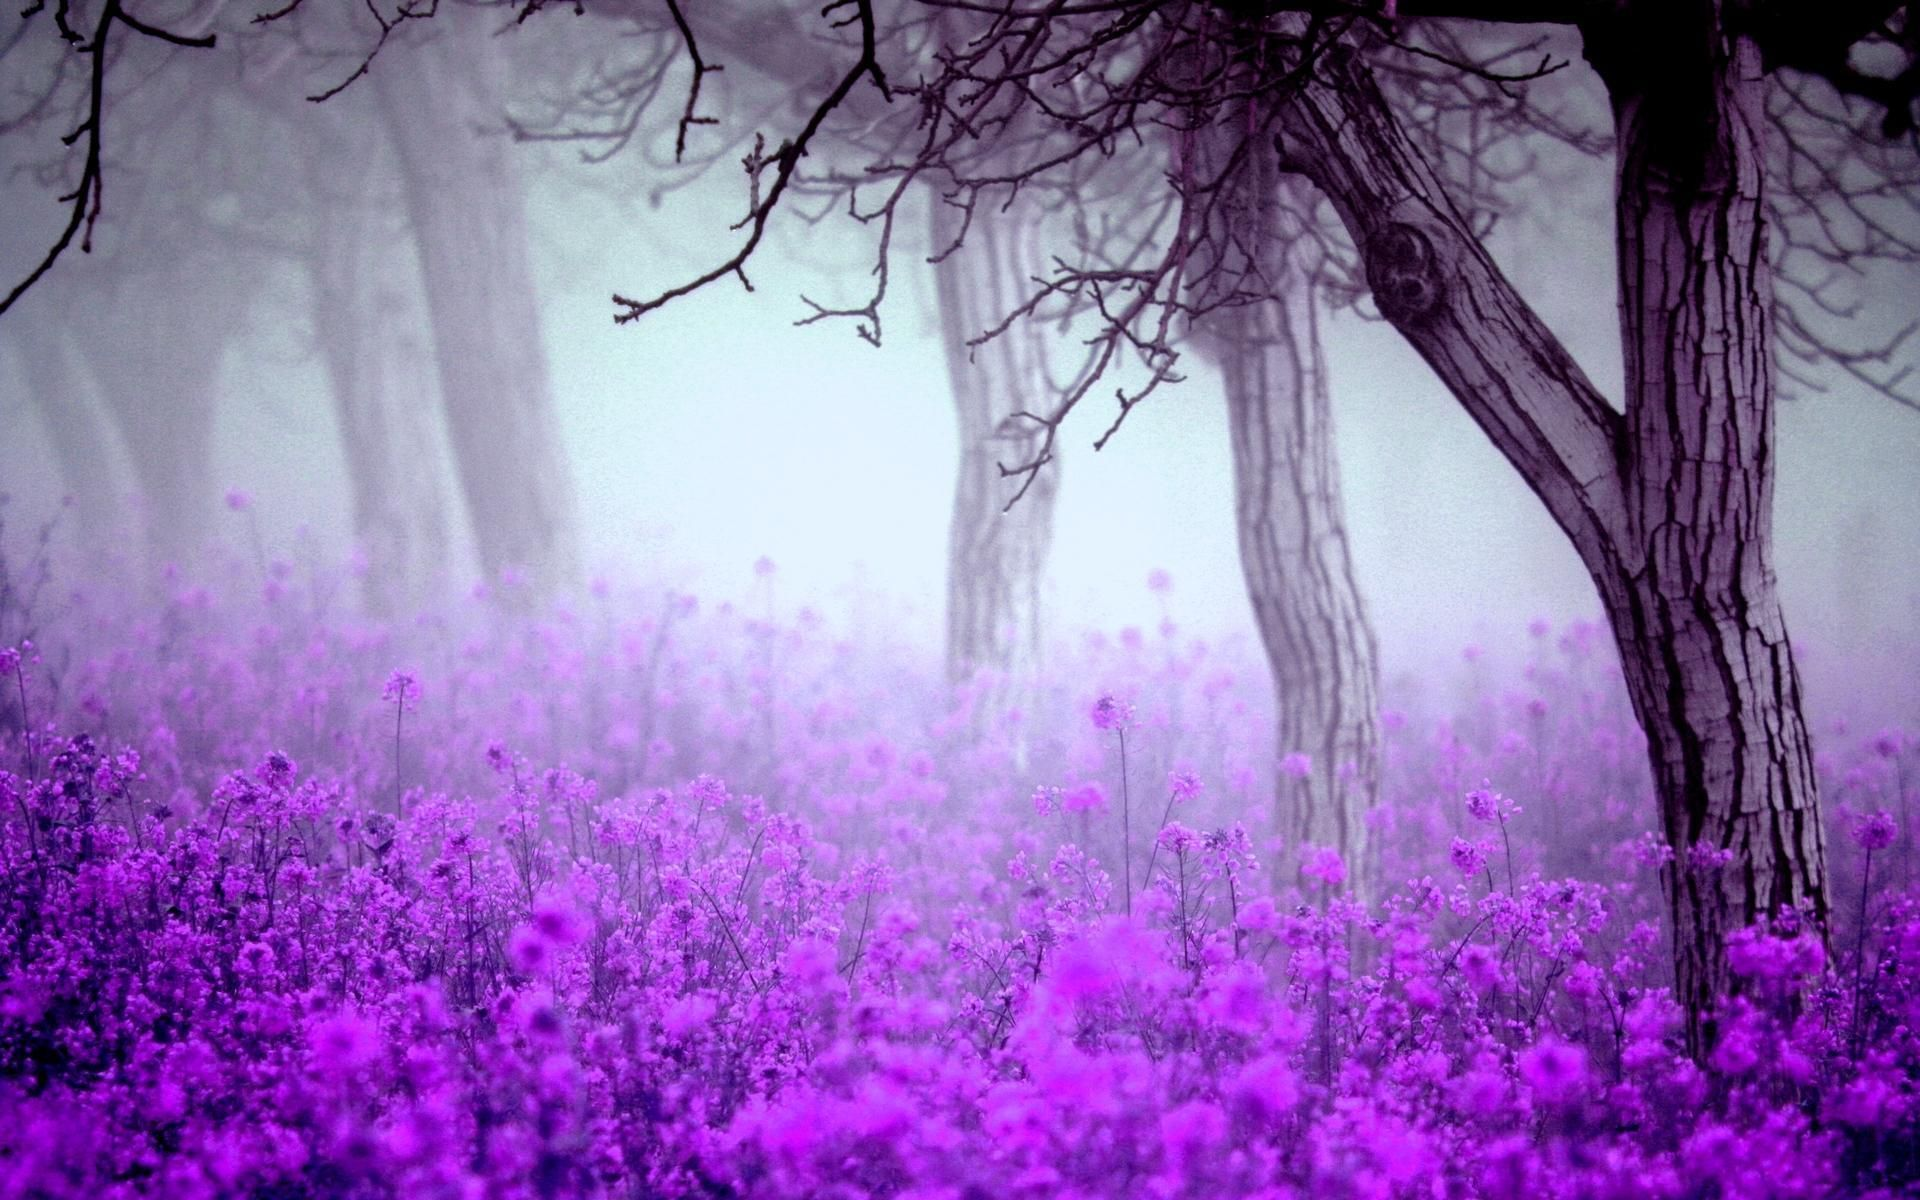 Purple Flower Wallpaper Flower Desktop Wallpaper Free Flower Wallpaper Purple Flowers Wallpaper